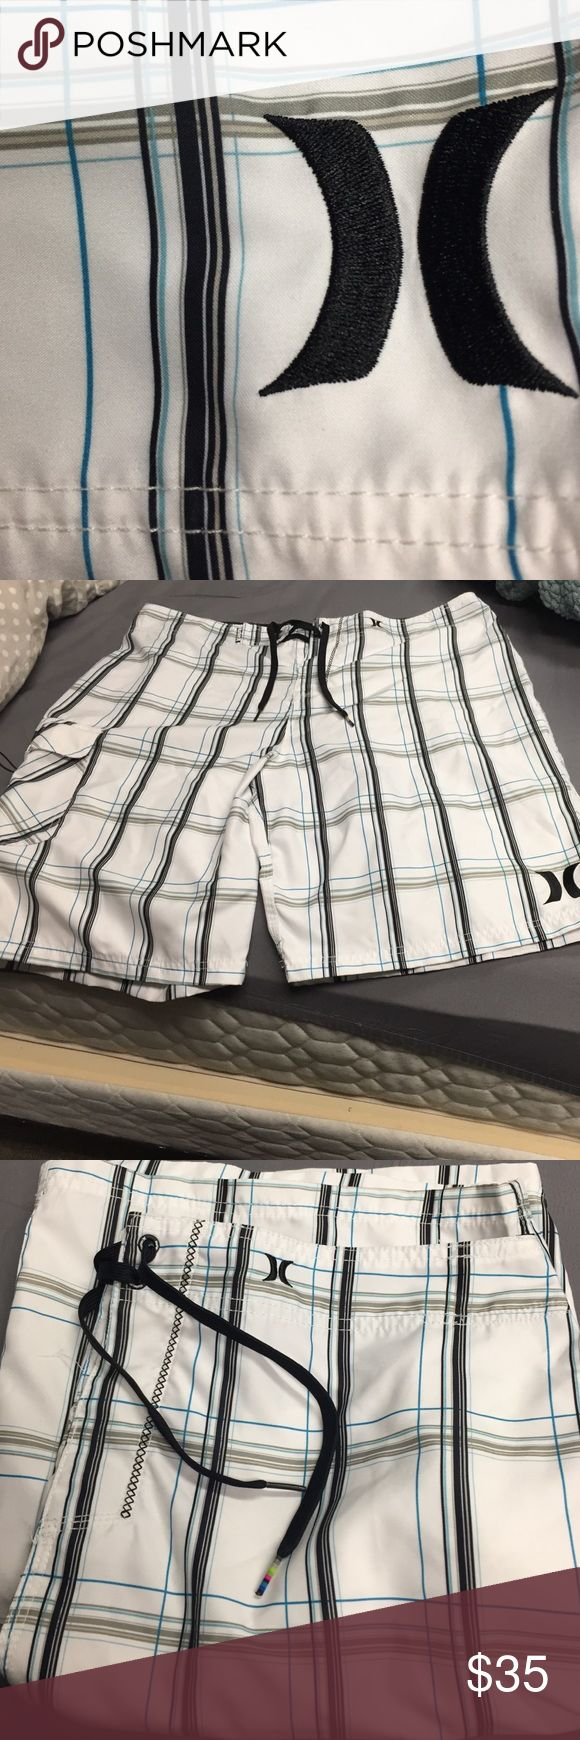 Hurley Board Shorts. NWOT. Size 38 Perfect Condition. Every guy needs pairs of board shorts, these are cool minus the cheesy.  Velcro Side Pocket w Cord and Colorful tip in Drawstring. Size 38 Hurley Swim Board Shorts